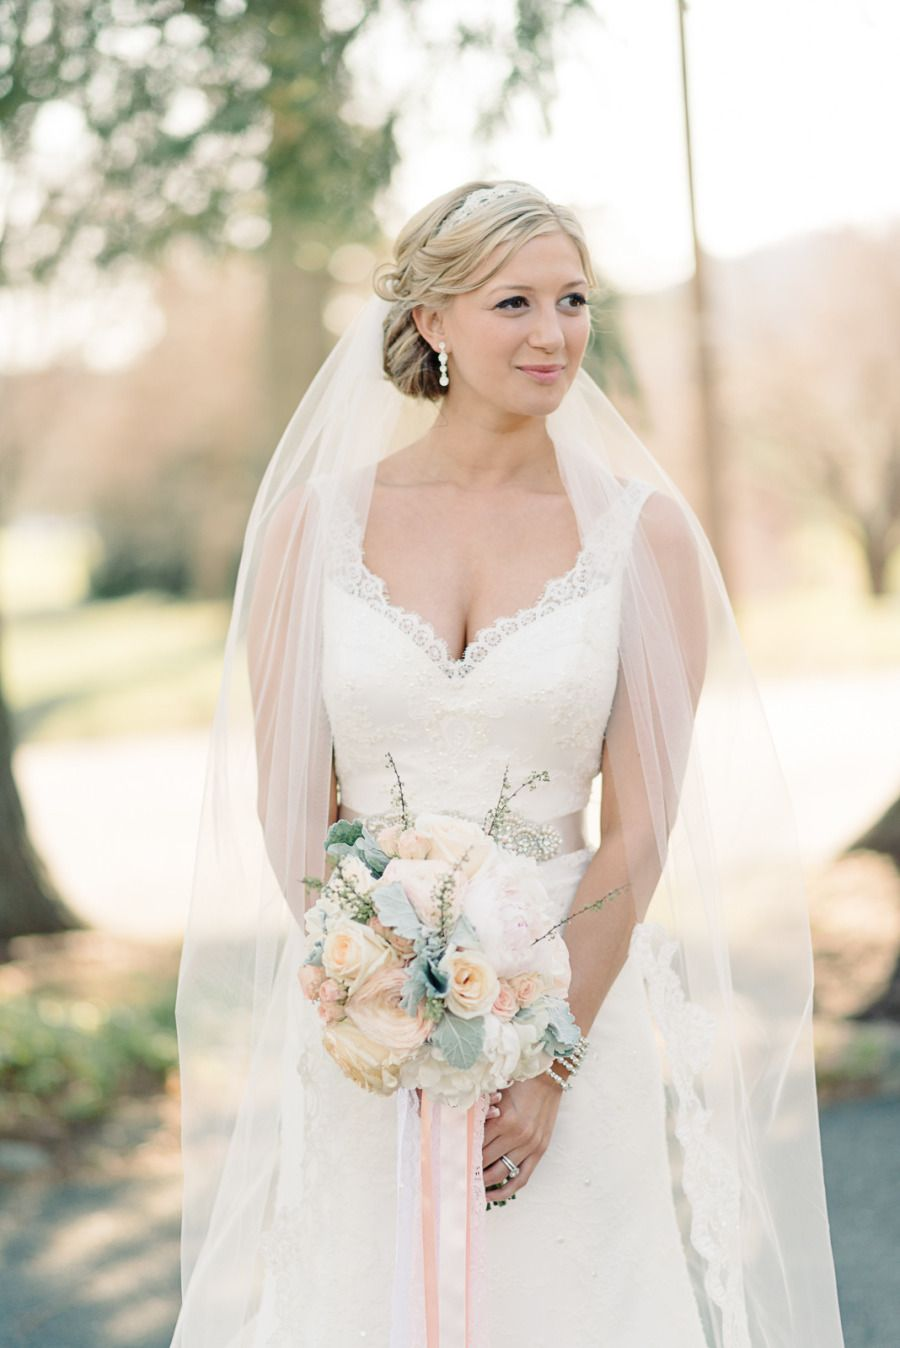 Cheap wedding dresses for military brides  Pin by flor zd  on u f a i r y t a l e u  Pinterest